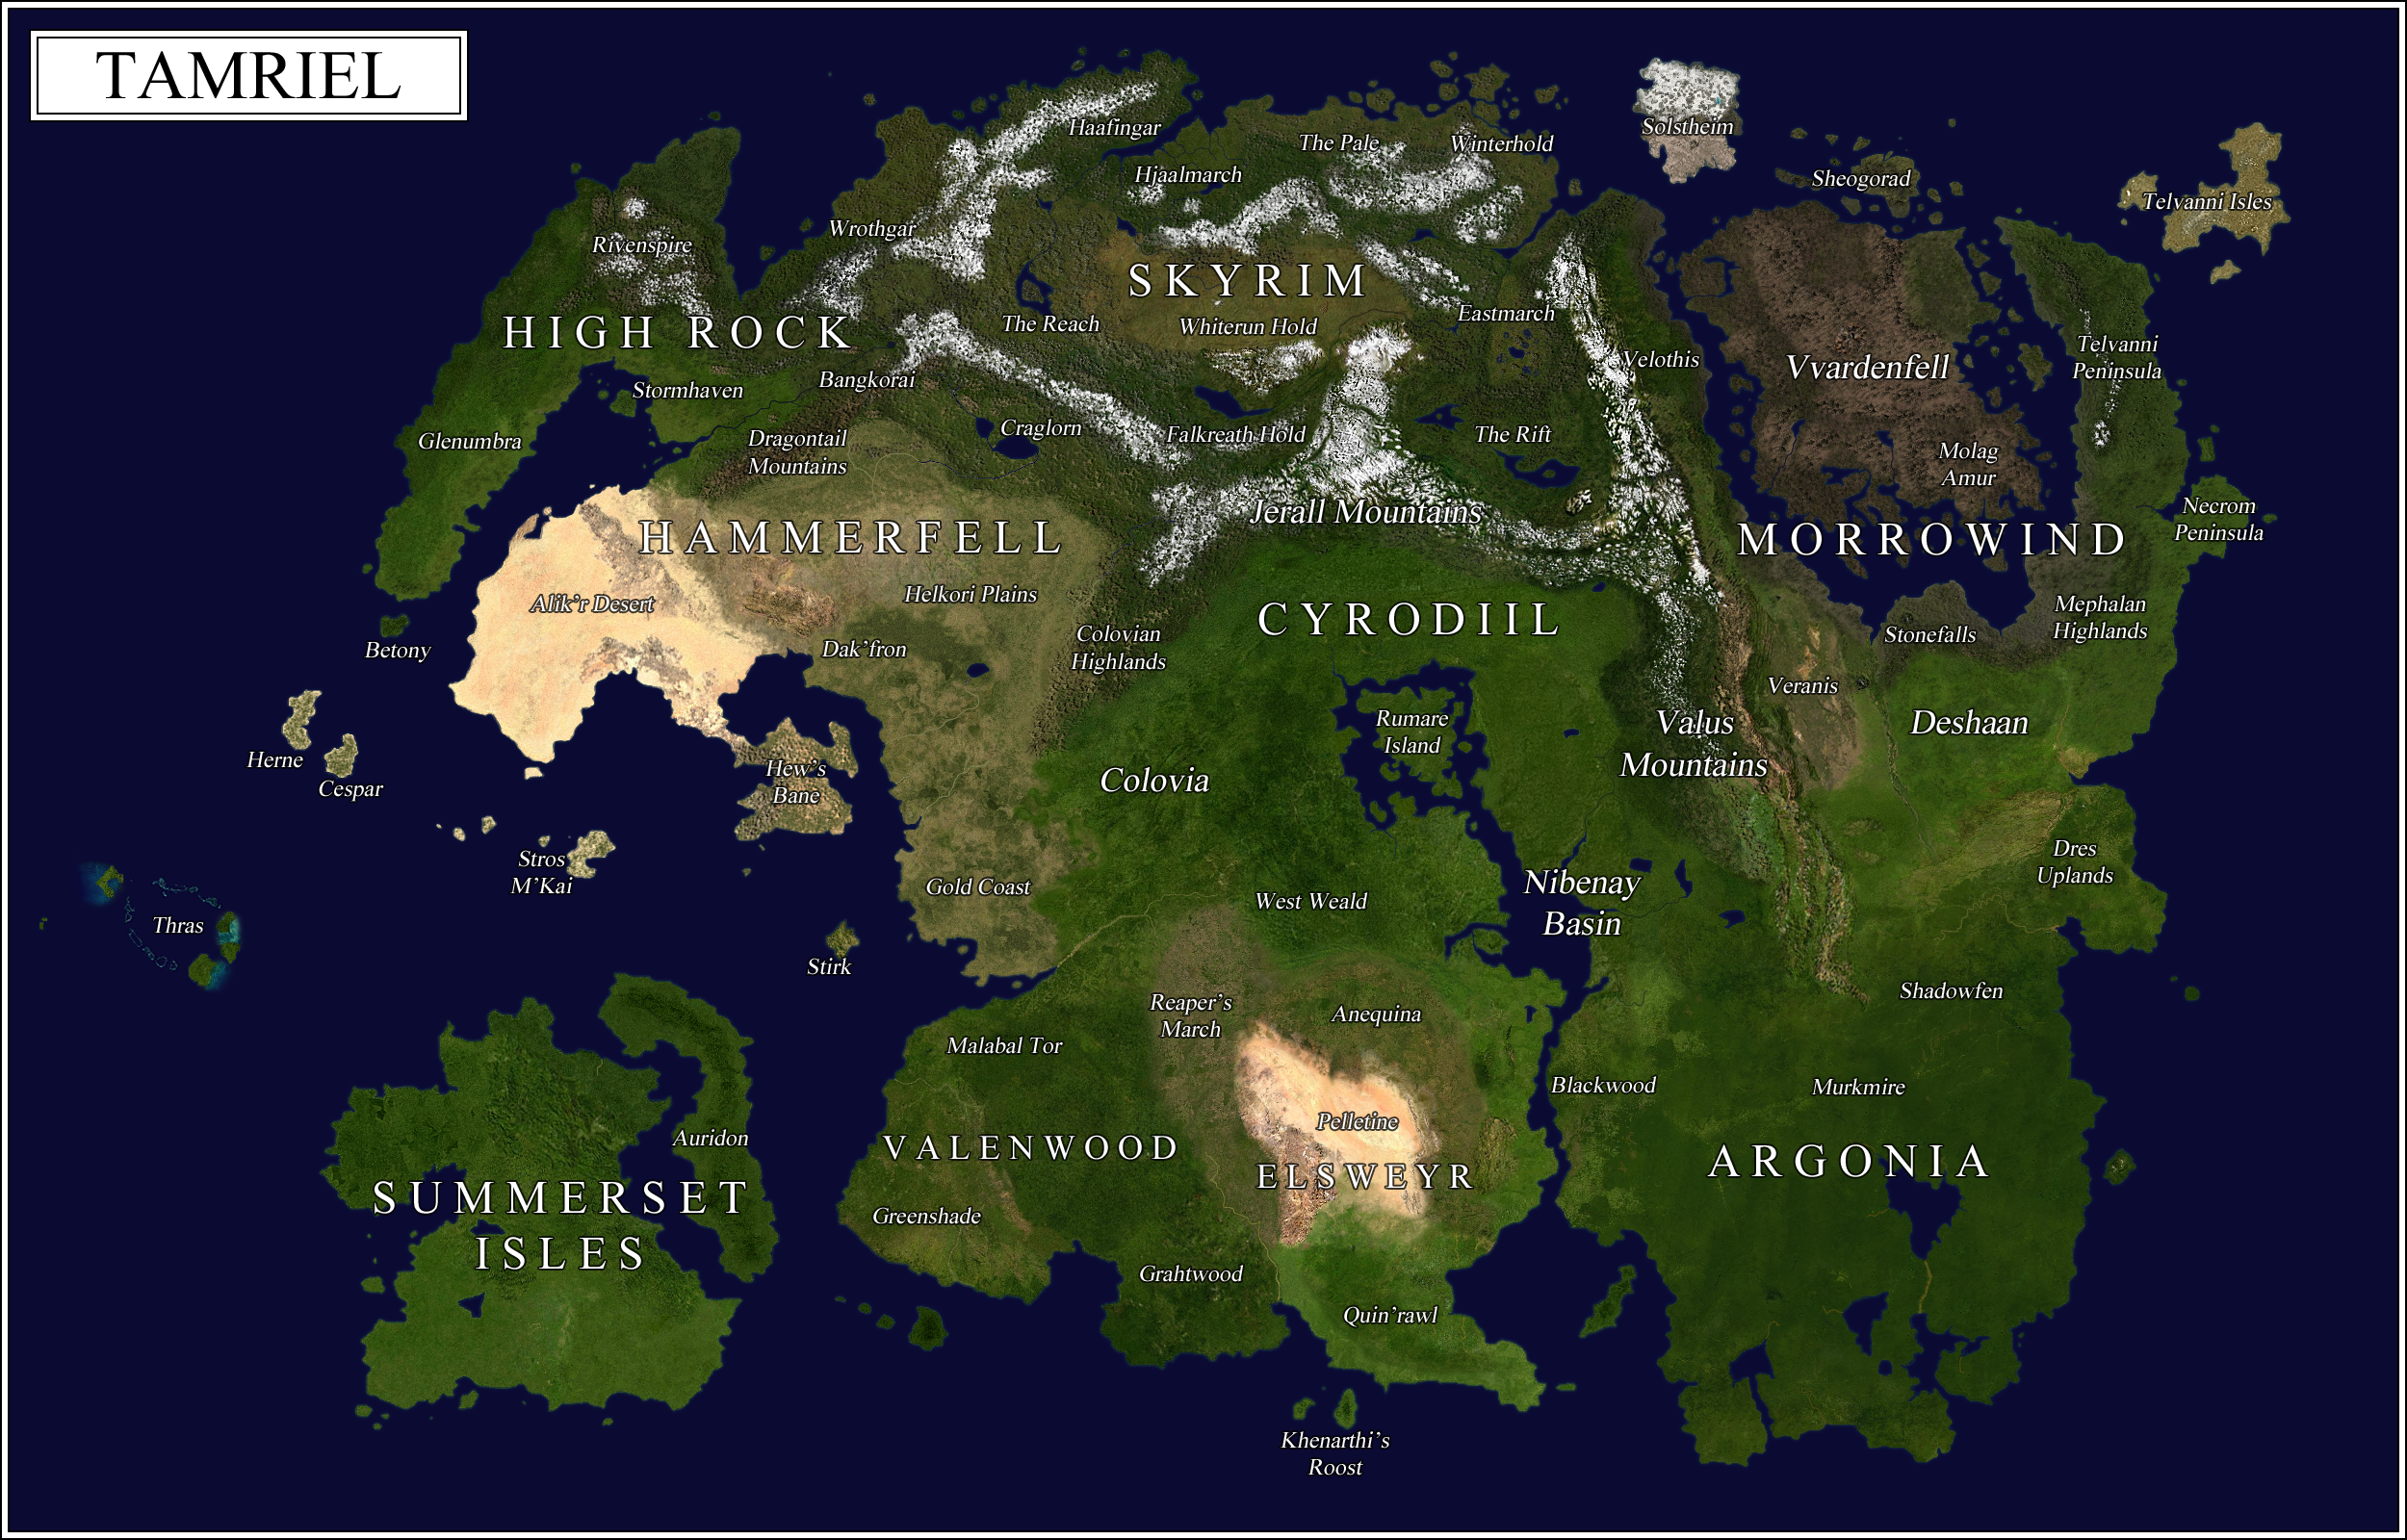 Satellite-style map of Tamriel : imaginarymaps on google tv map, google commercial map, google maps florida, google chrome, google search, bing maps, google mars, google moon, google map maker, google goggles, google street view, google aerial maps, google government map, web mapping, philippines map, google road map, google latitude, google 3g map, google translation, google maps usa united states, google mapa, yahoo! maps, google maps navigation, google translate, google military map, google lightning map, satellite map images with missing or unclear data, google docs, google network map, route planning software, google earth, google voice, google sky, google world map,